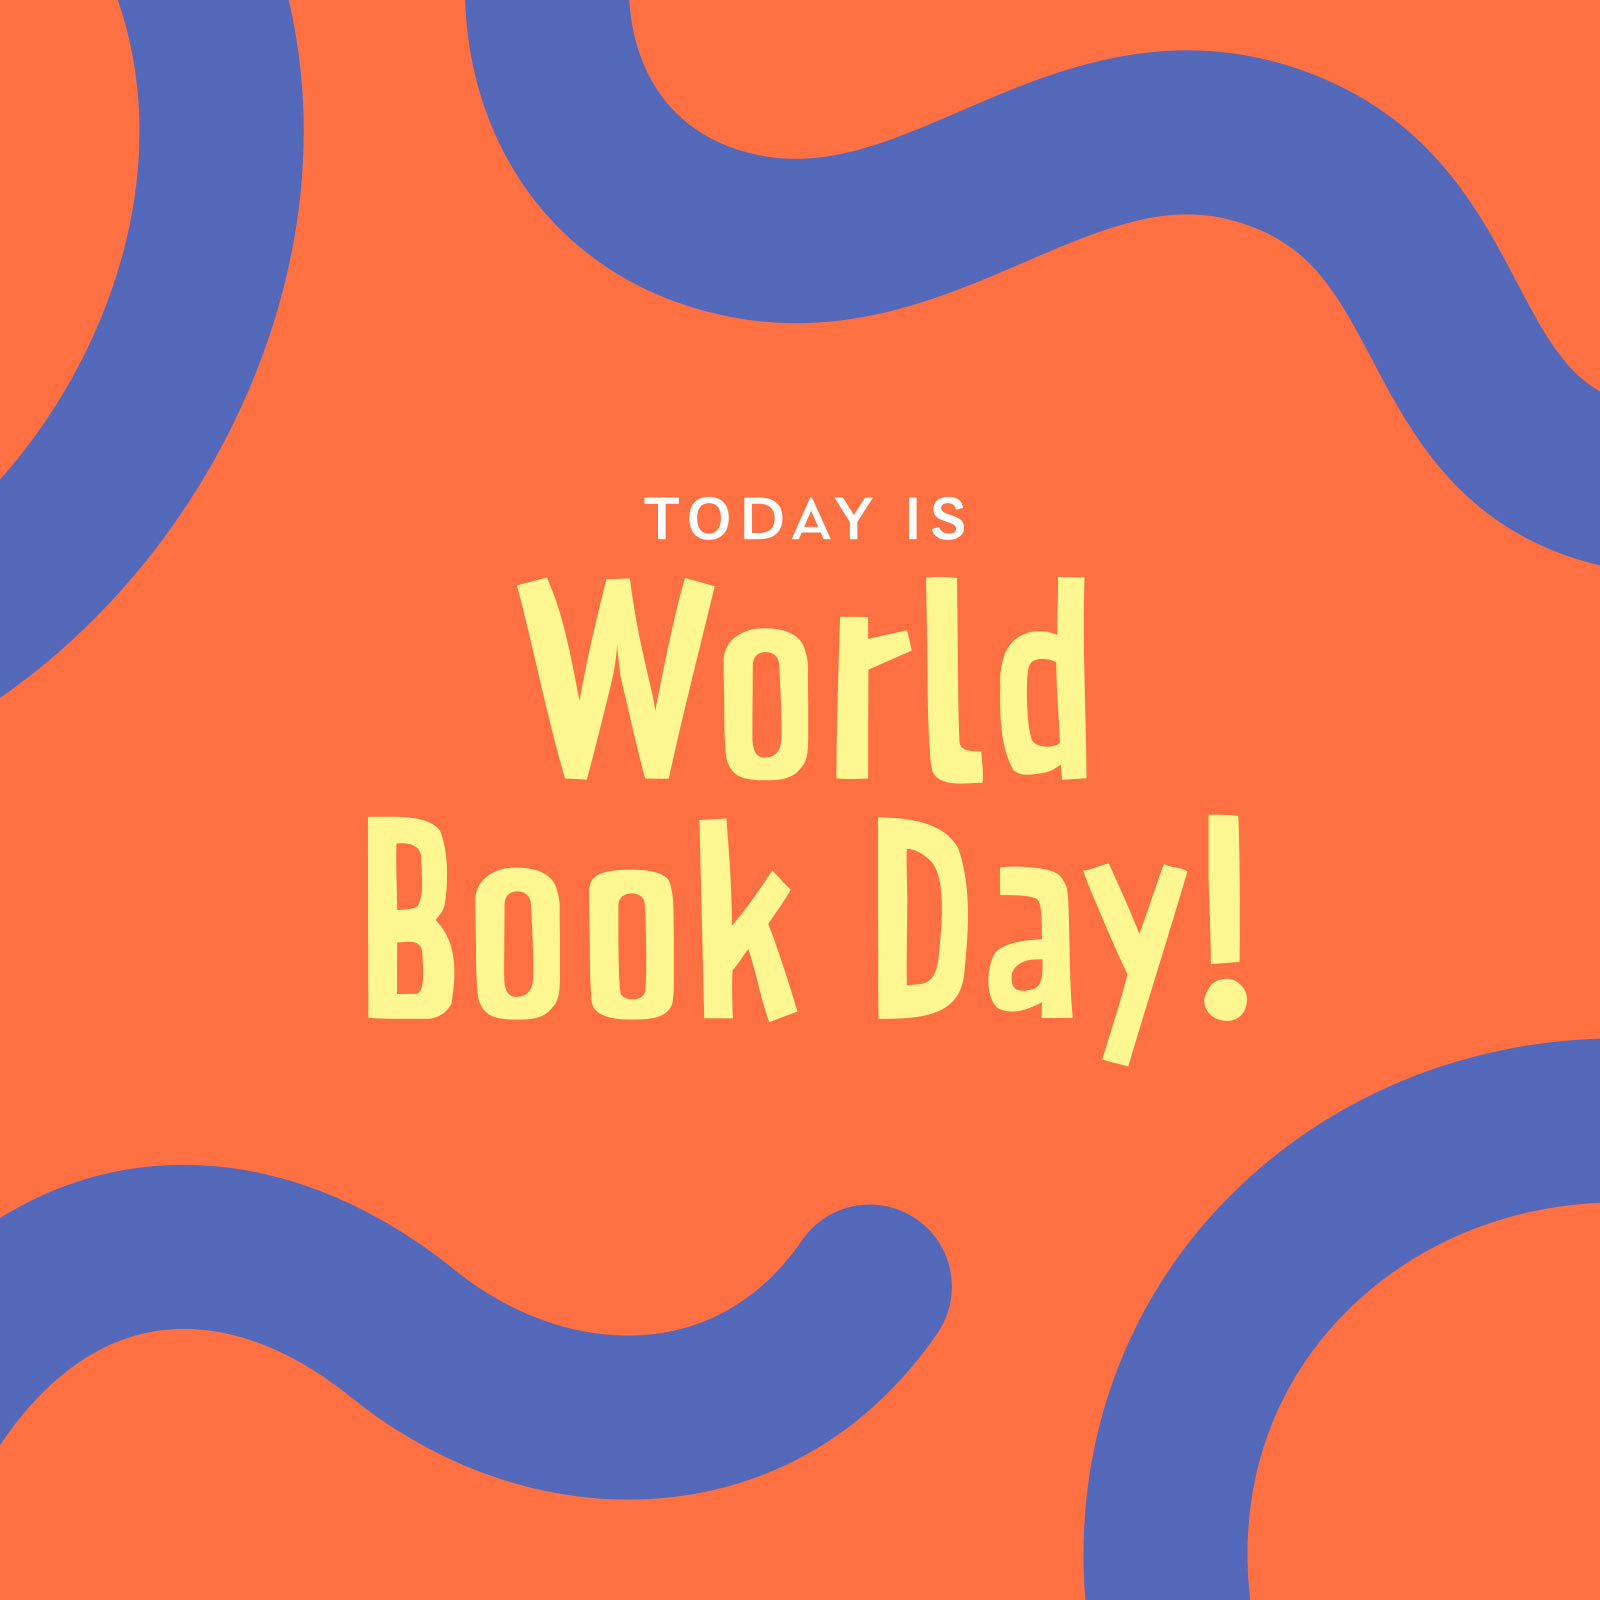 """Text says """"Today is World Book Day"""", on an orange background with blue tentacle graphics framing it."""